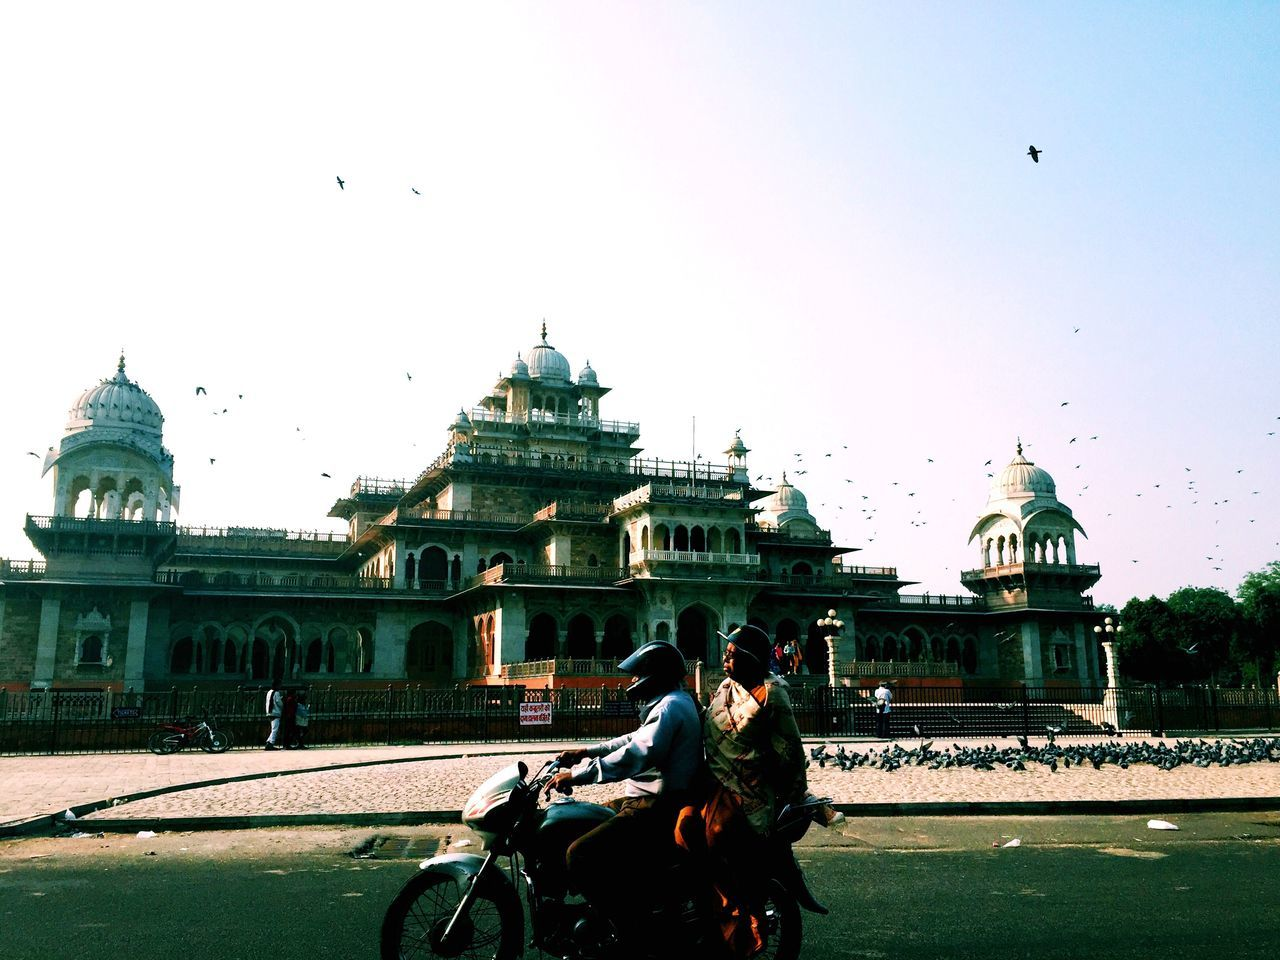 horse, real people, building exterior, horseback riding, built structure, architecture, domestic animals, two animals, dome, day, riding, men, travel destinations, clear sky, horse cart, mammal, place of worship, sky, outdoors, lifestyles, bird, nature, people